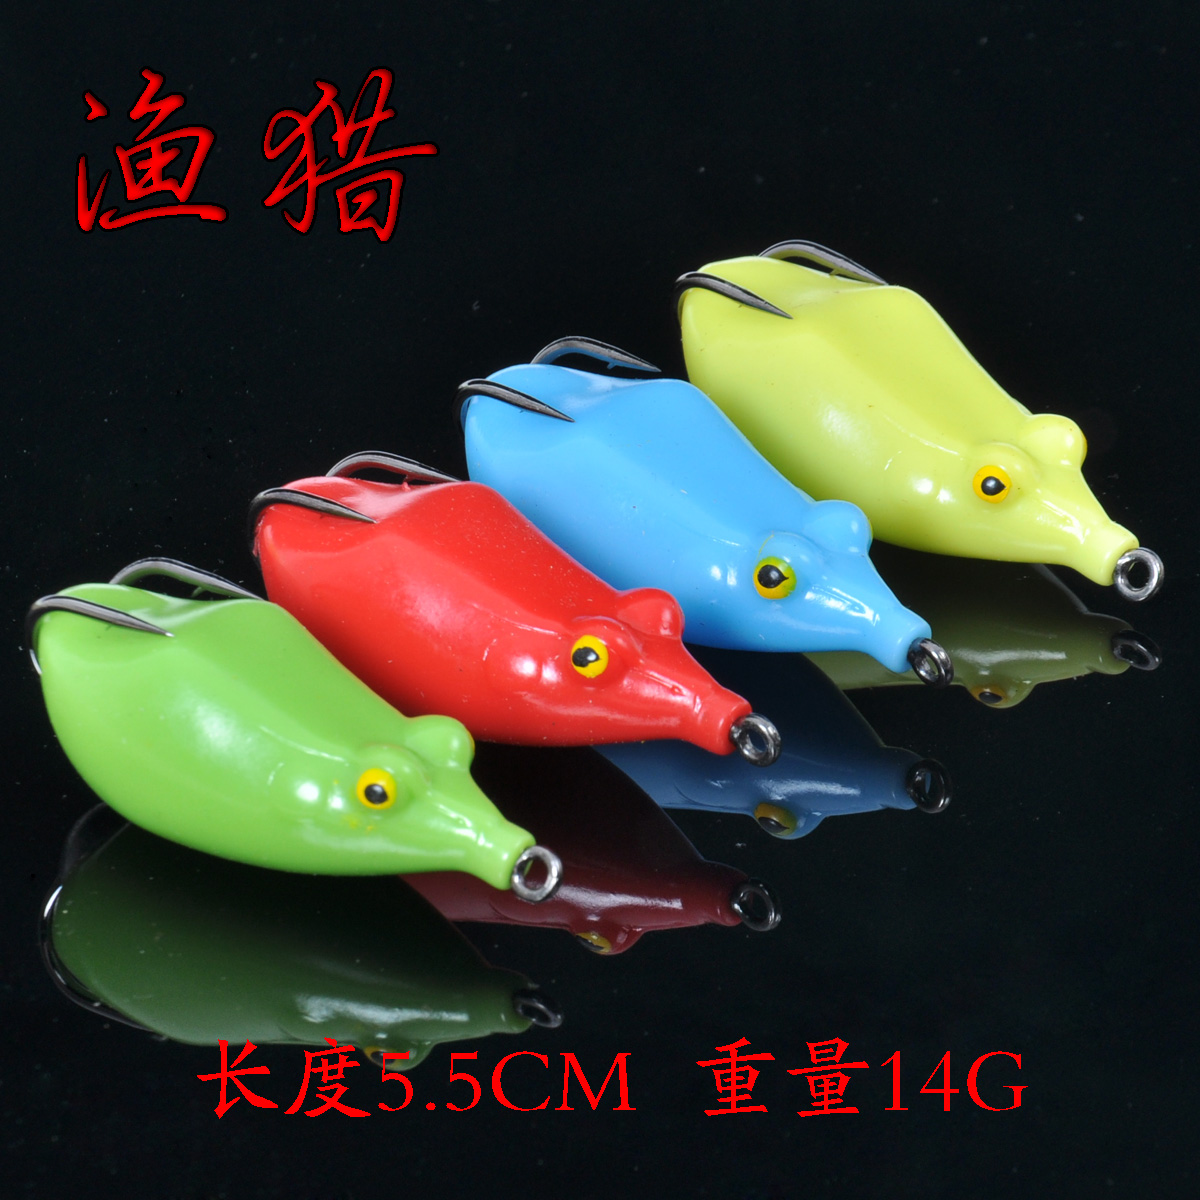 Hunting and fishing inn-beak ray frog without modification. an angle of 45 degrees, blackfish designed to kill, lures bait, lure